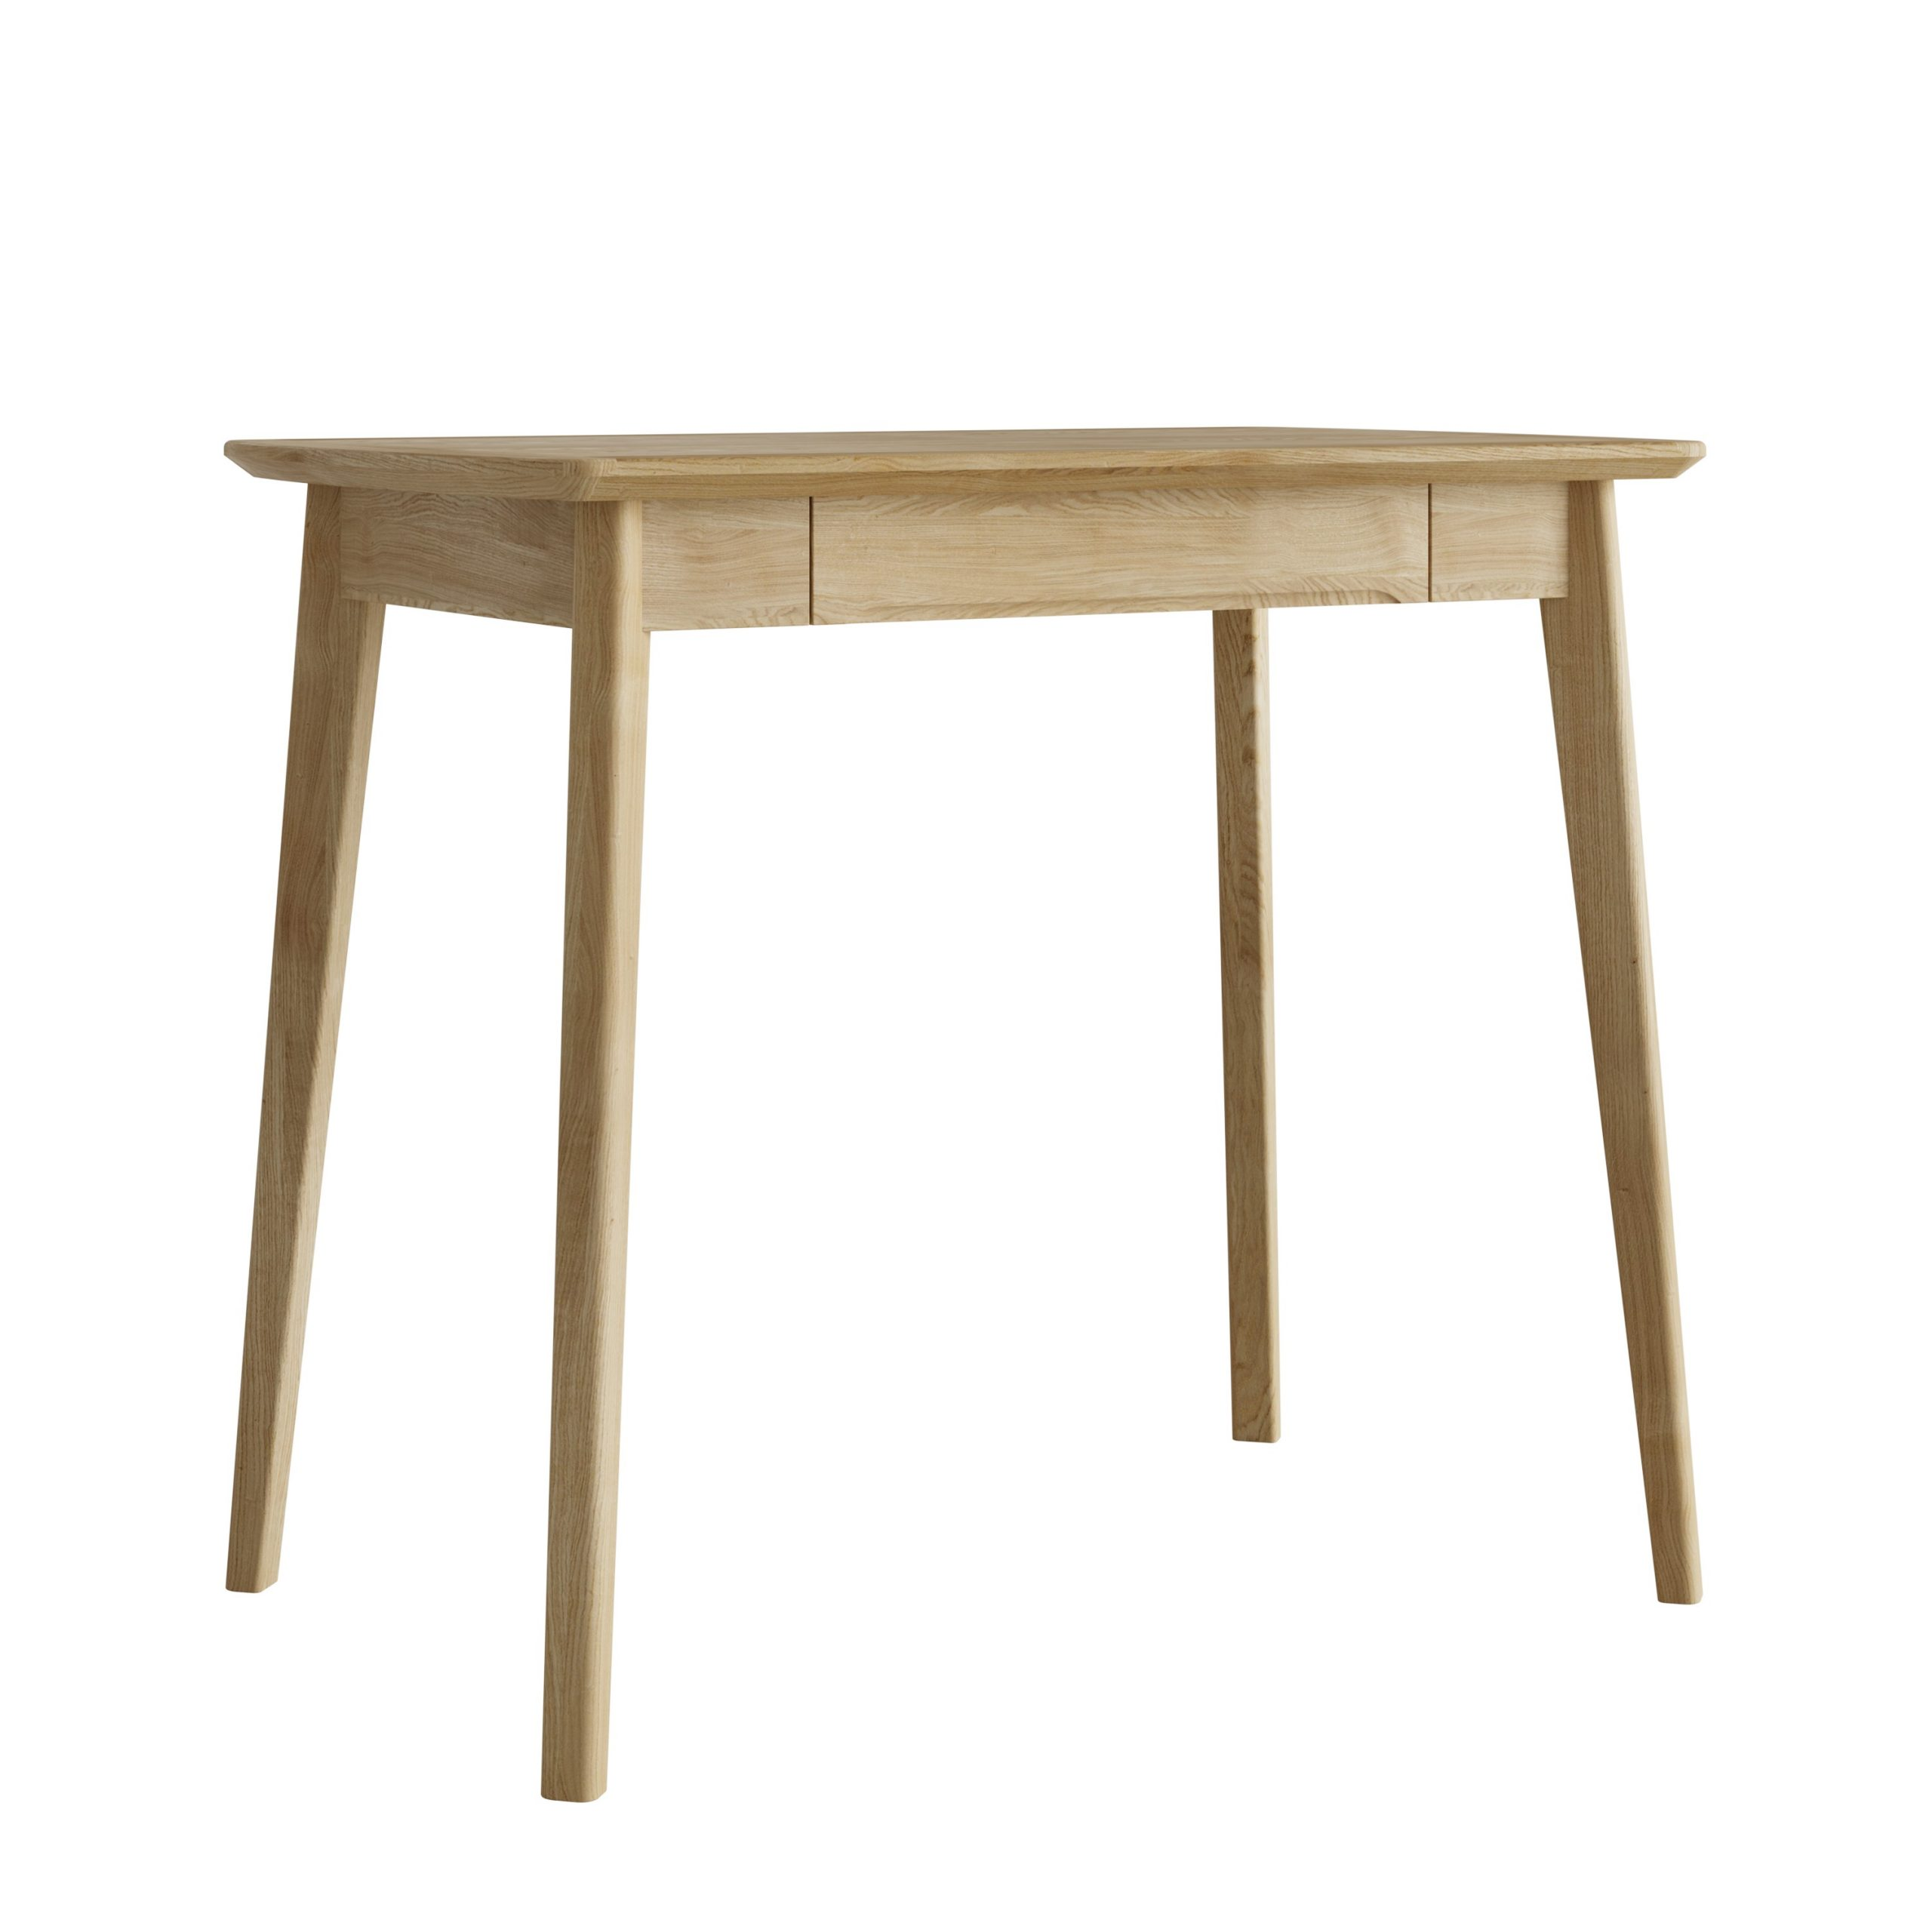 Oak Desk or Dressing Table - Our Price - Only £299